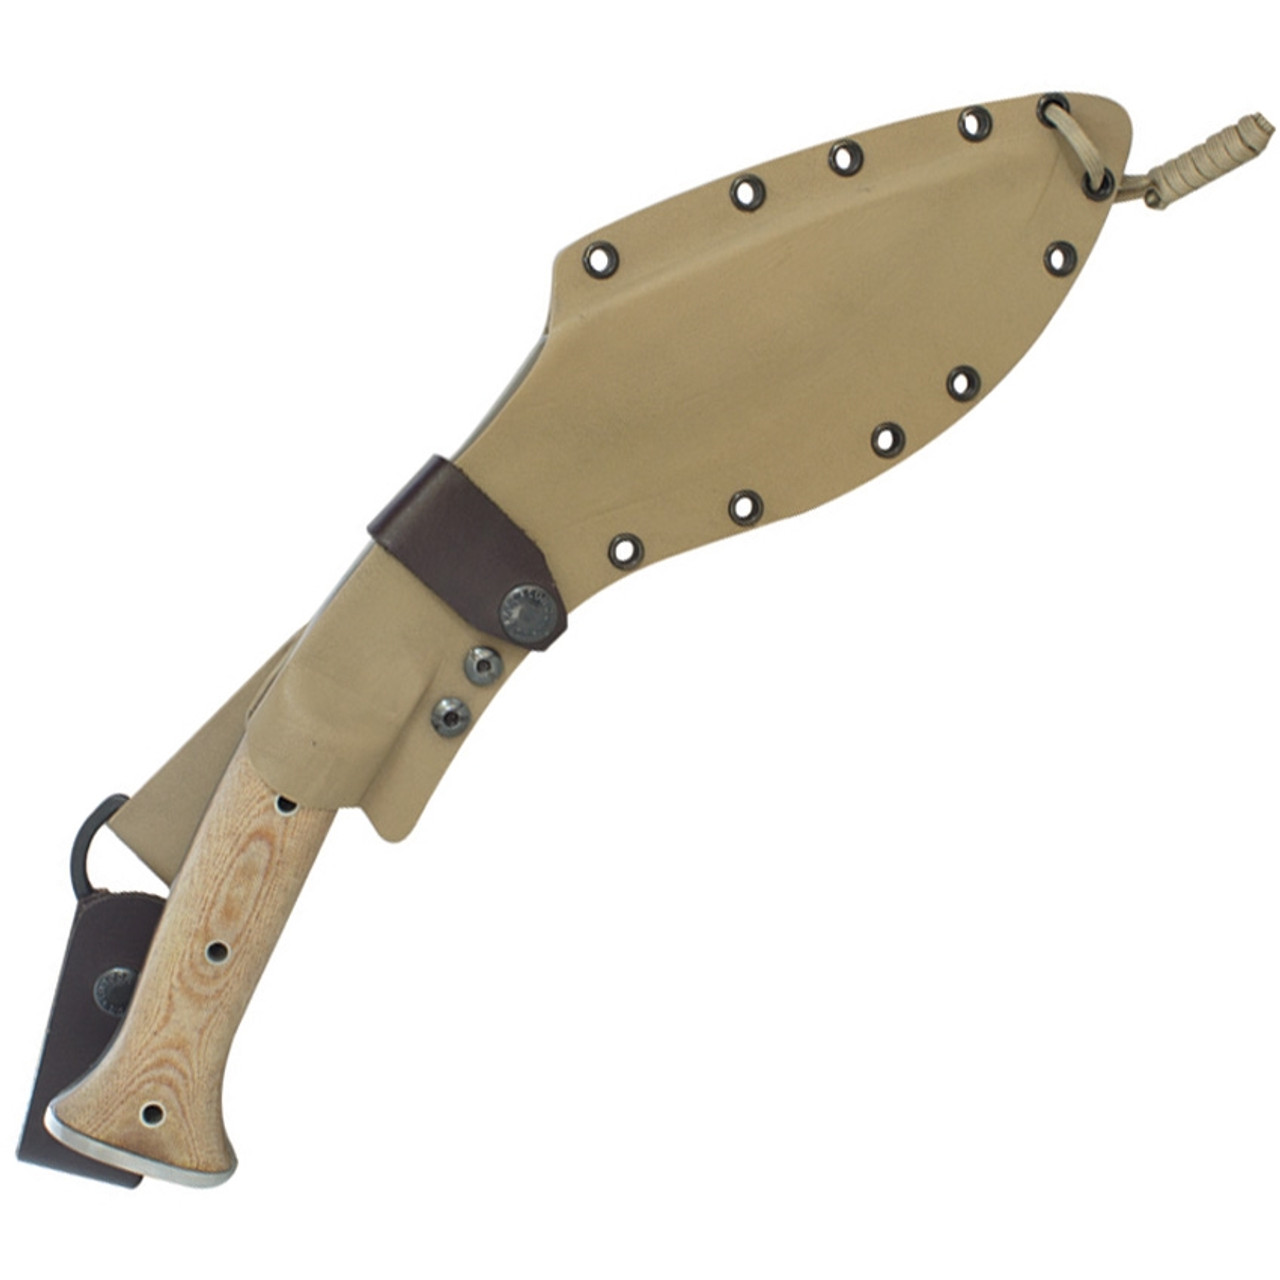 "Condor Tool & Knife CTK1811-10, 10"" Carbon Steel Kukri Fixed Blade, Desert Tan Micarta Handle, Kydex Sheath"